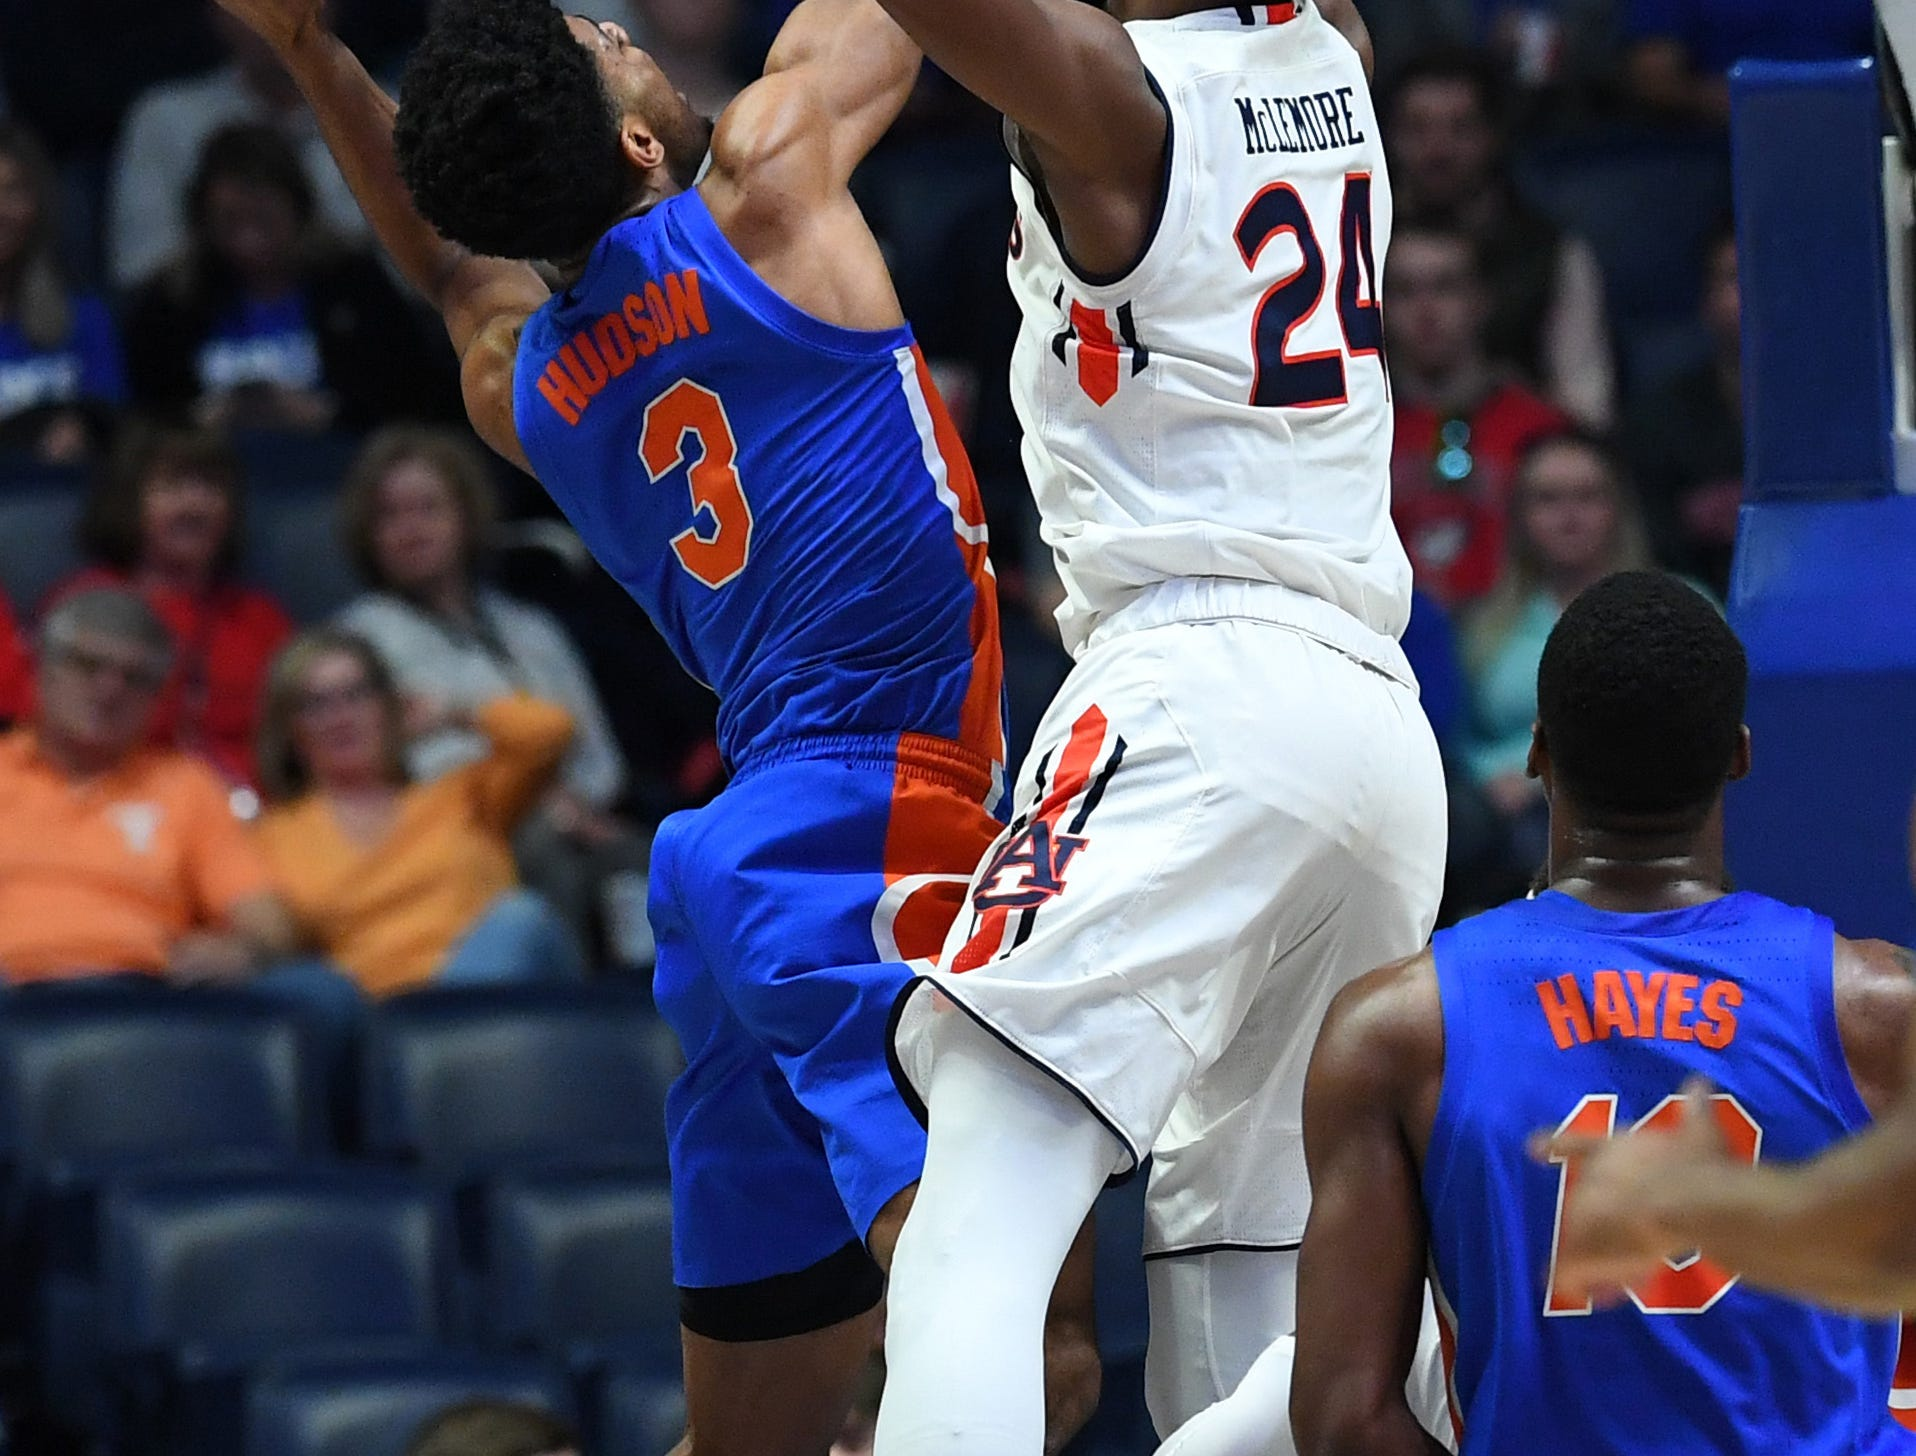 Mar 16, 2019; Nashville, TN, USA; Florida Gators guard Jalen Hudson (3) is fouled by Auburn Tigers forward Anfernee McLemore (24) while shooting the ball during the first half of the SEC conference tournament at Bridgestone Arena. Mandatory Credit: Christopher Hanewinckel-USA TODAY Sports